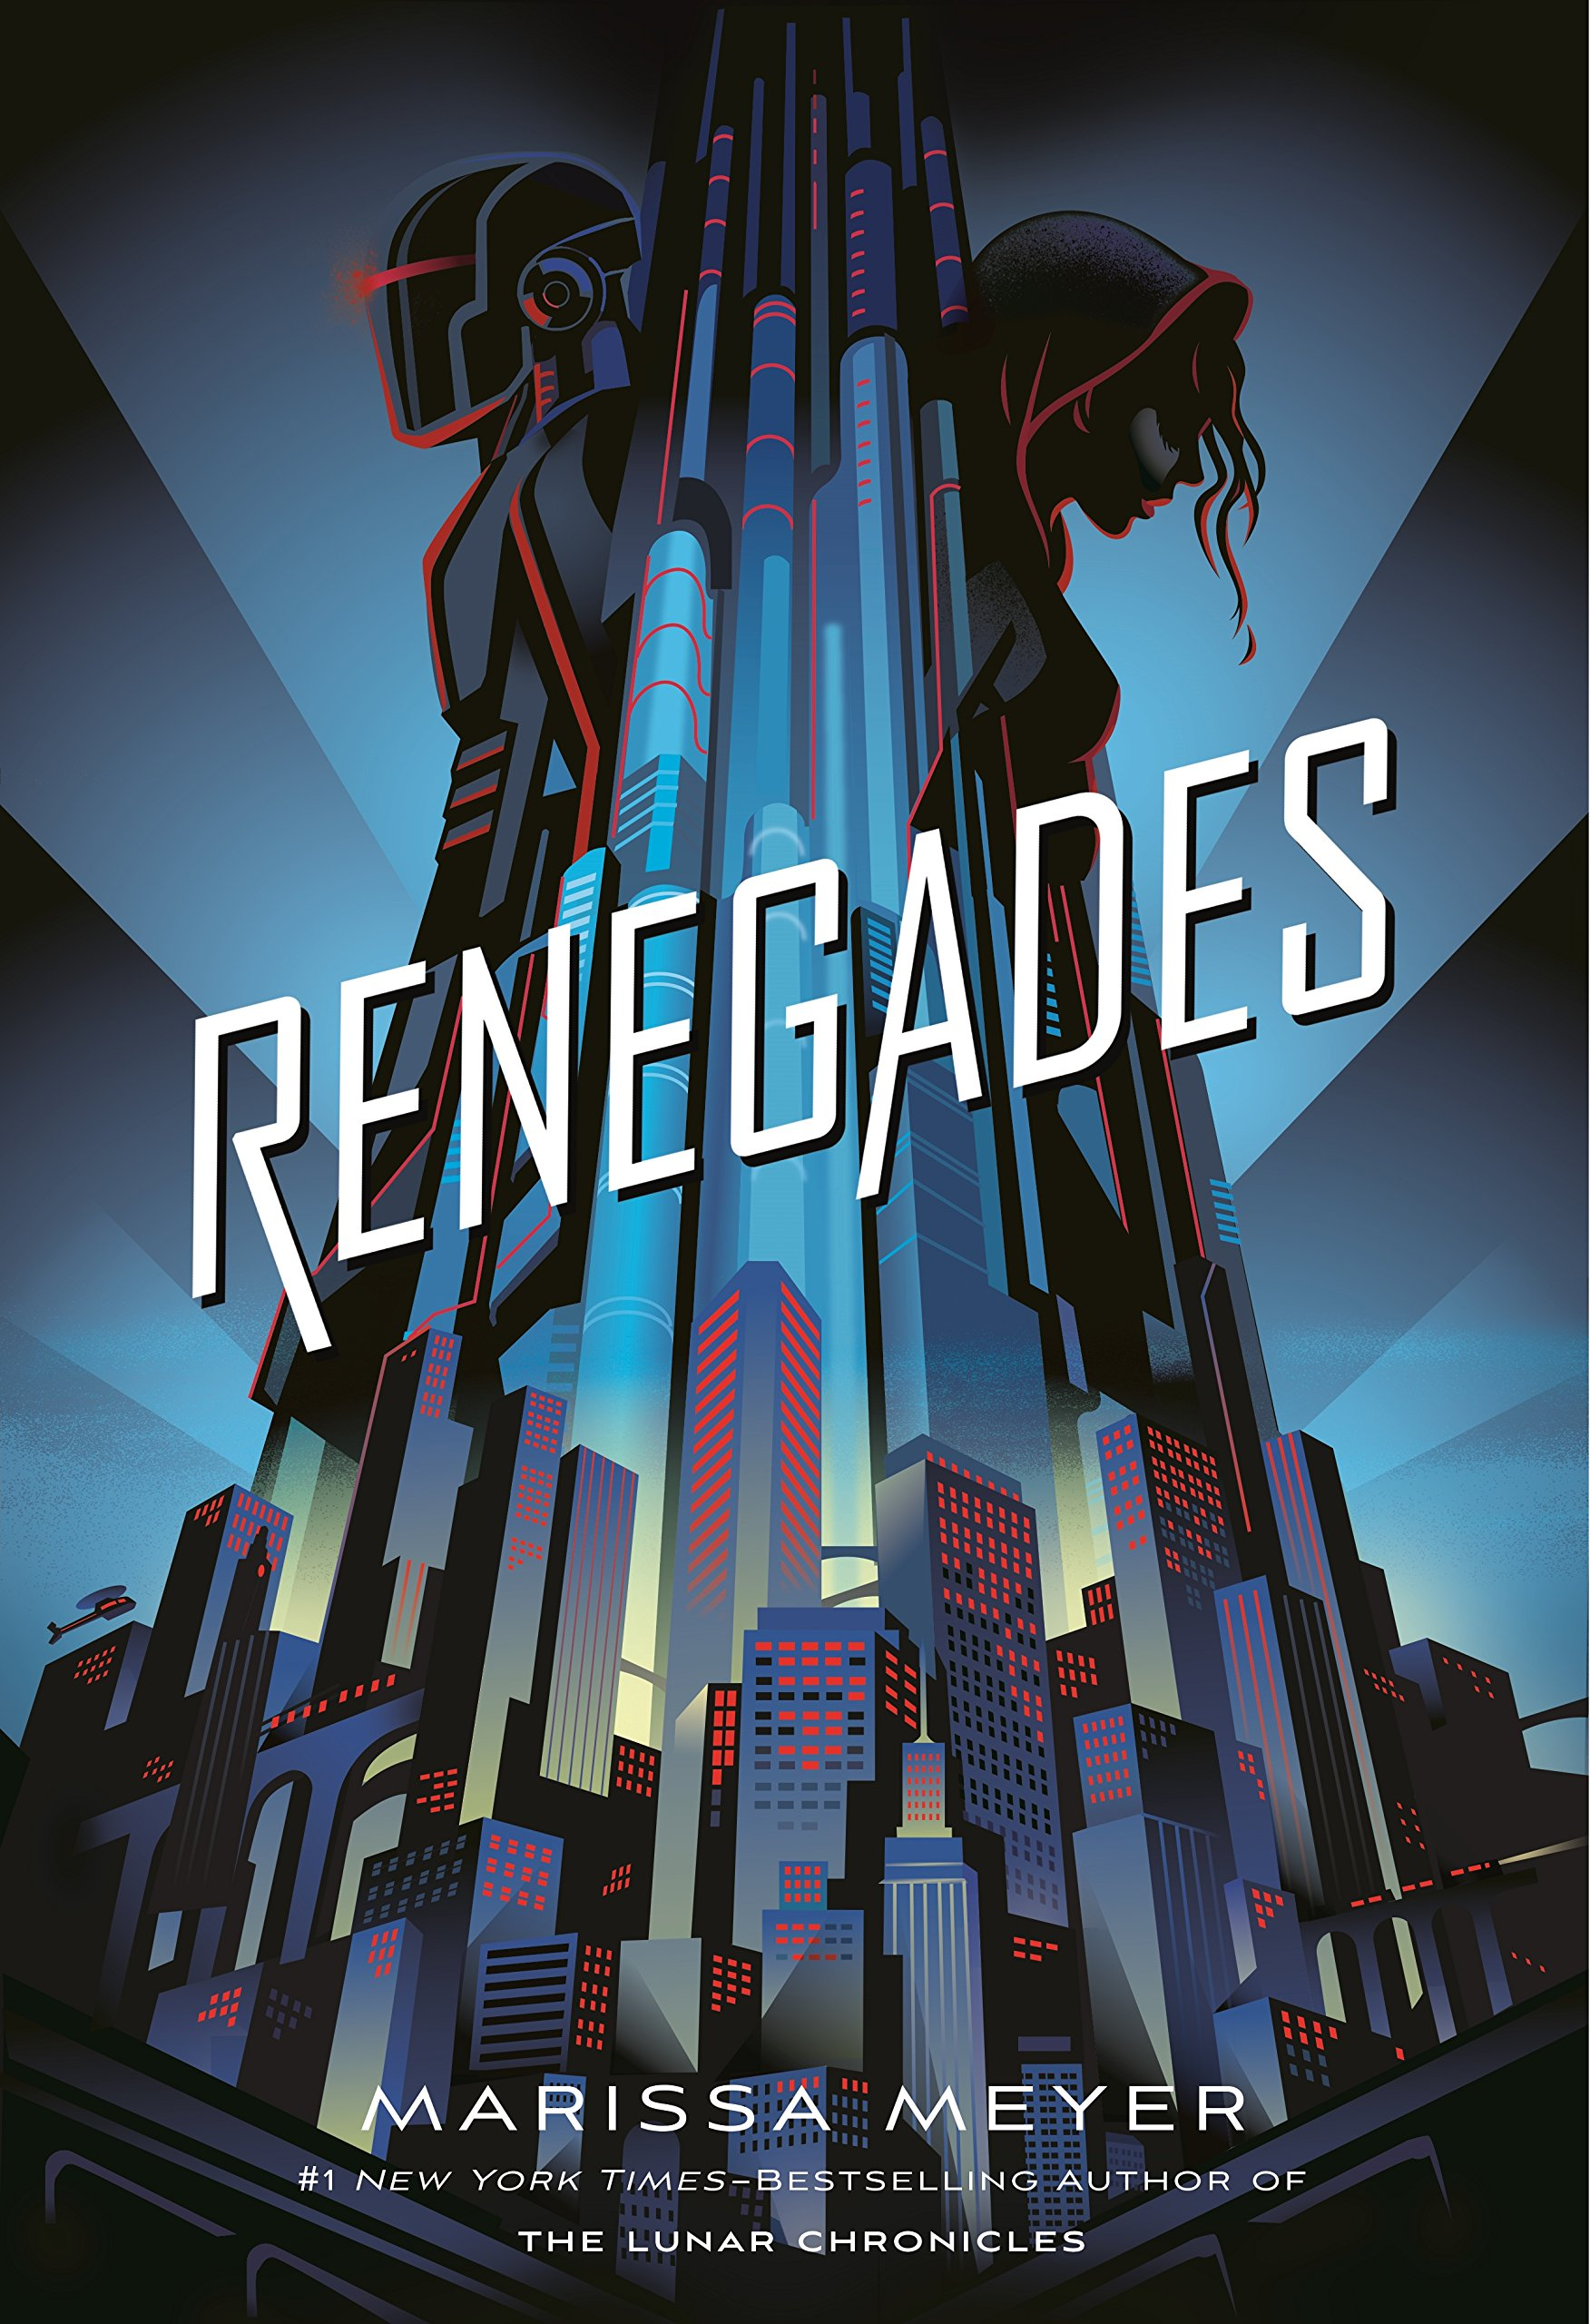 Renegades: Amazon.ca: Meyer, Marissa: Books